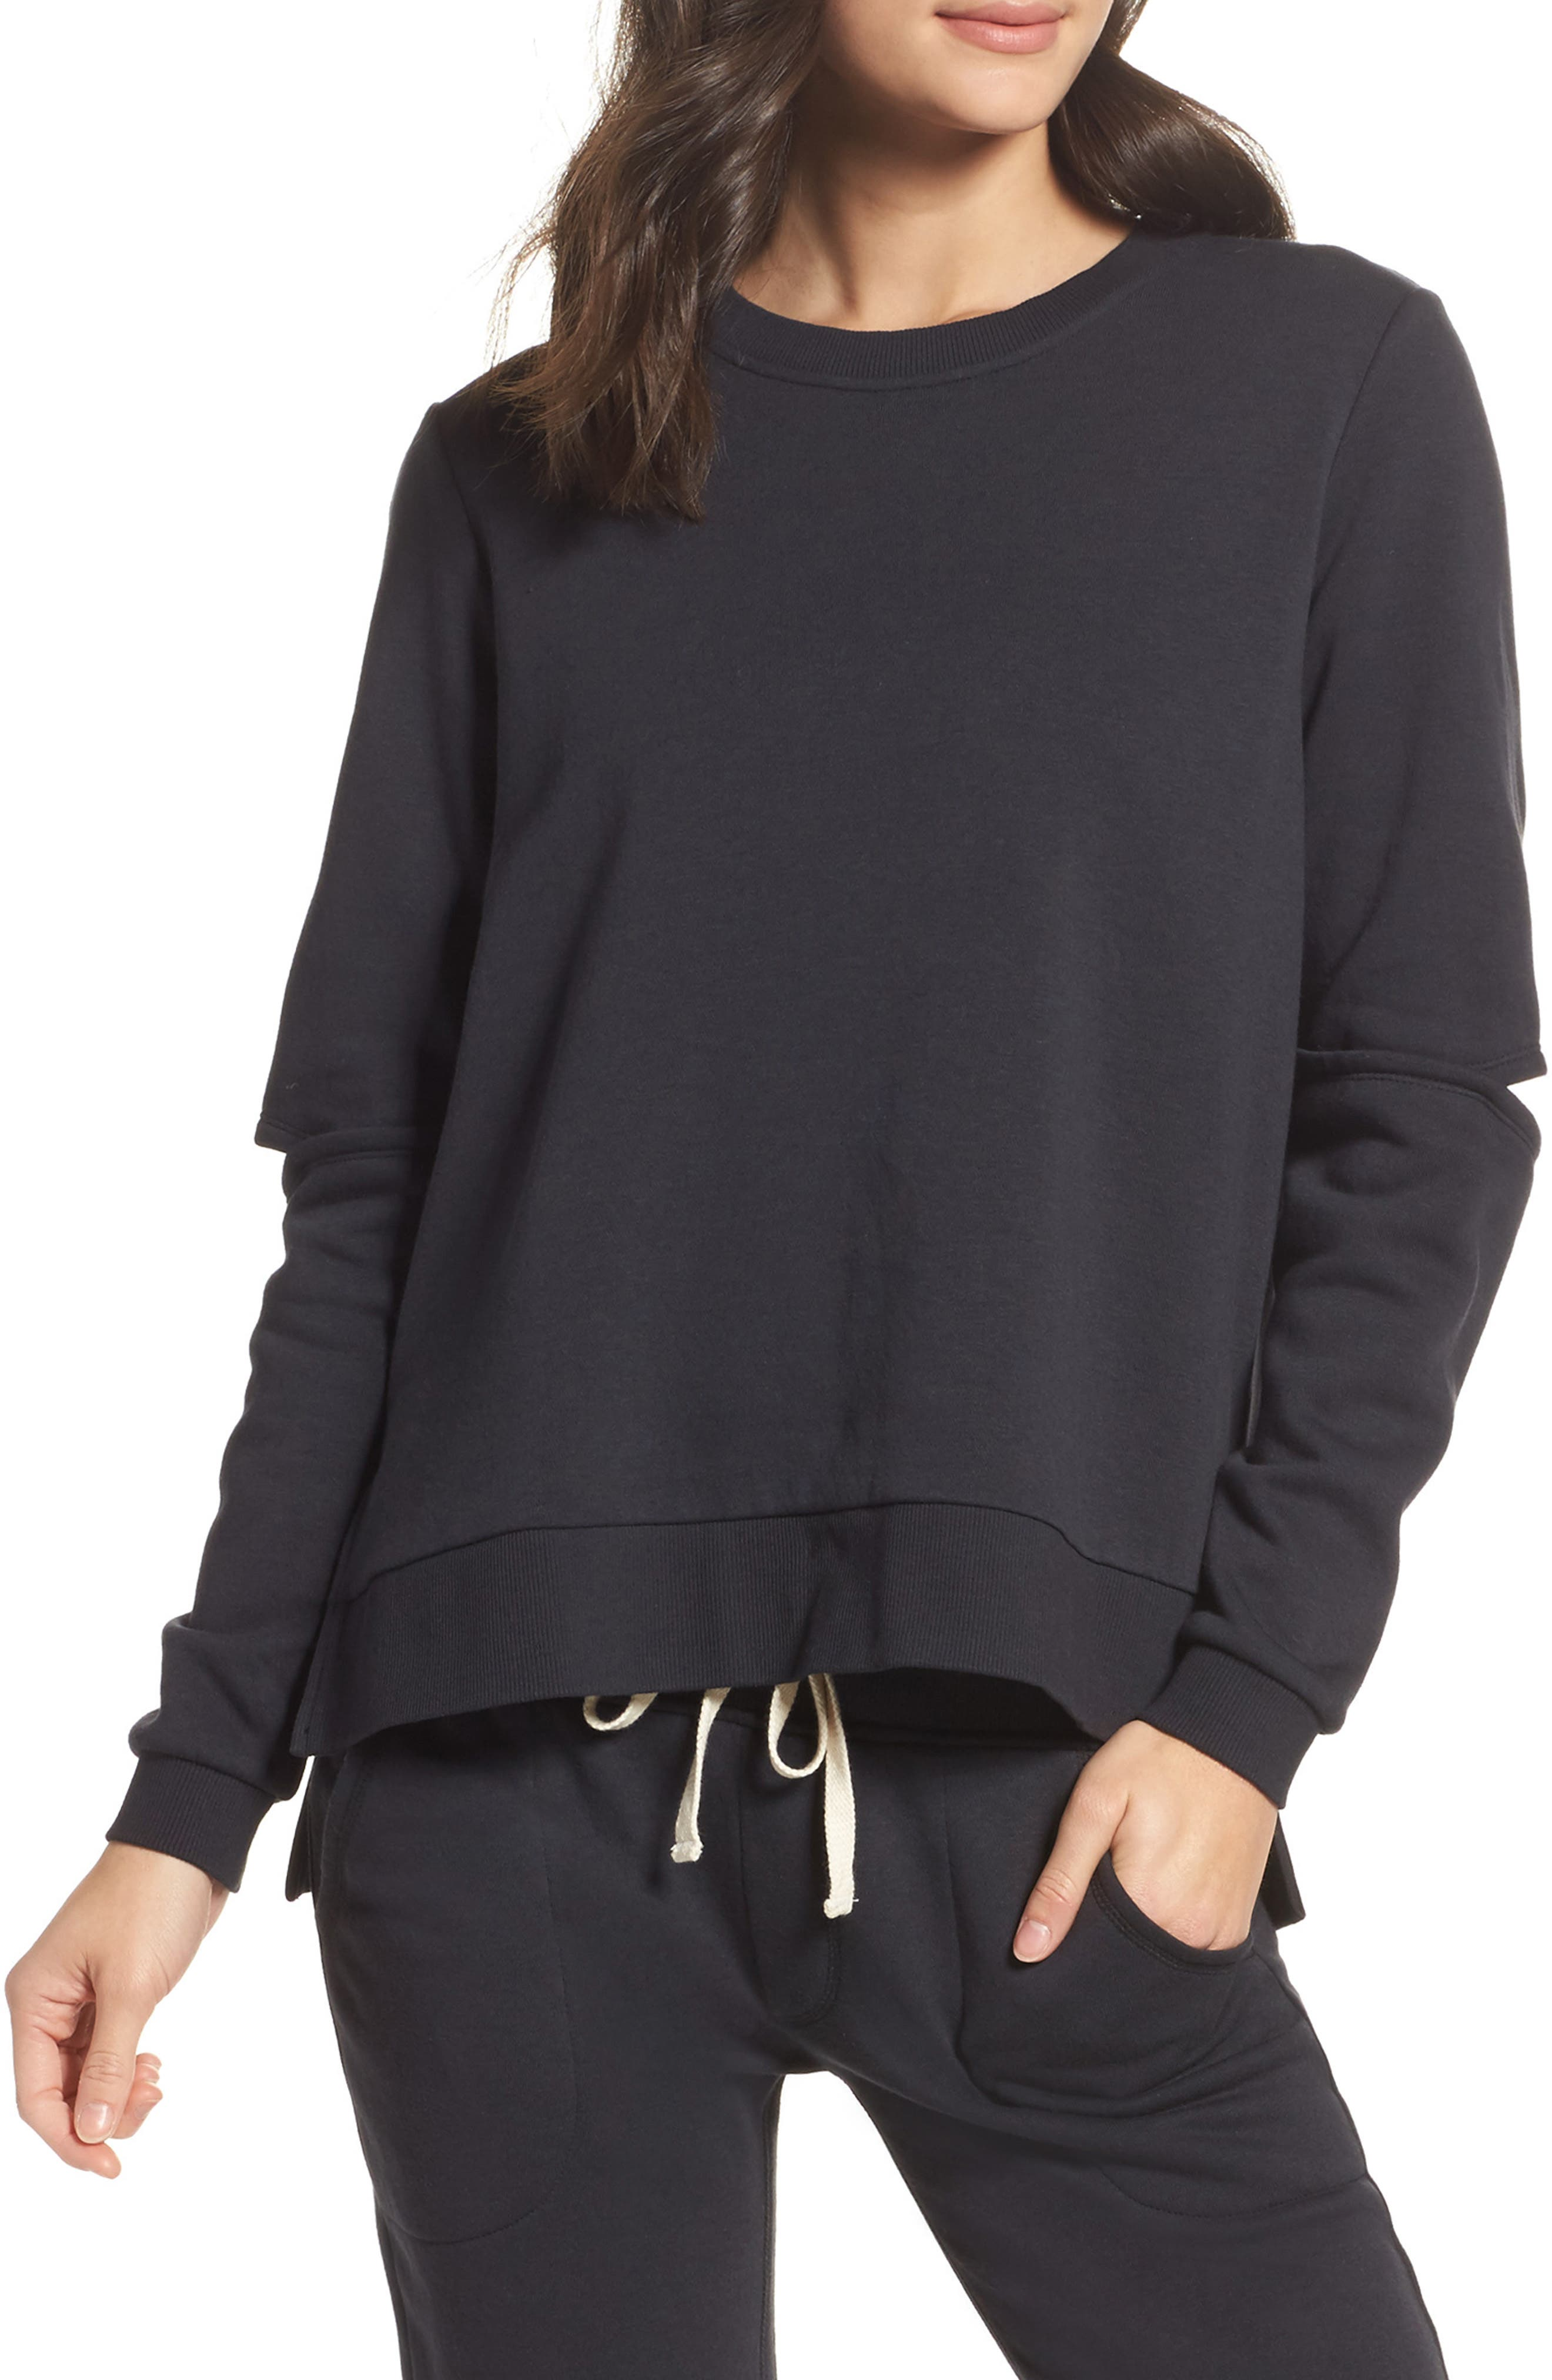 Alternative Cutout Sweatshirt